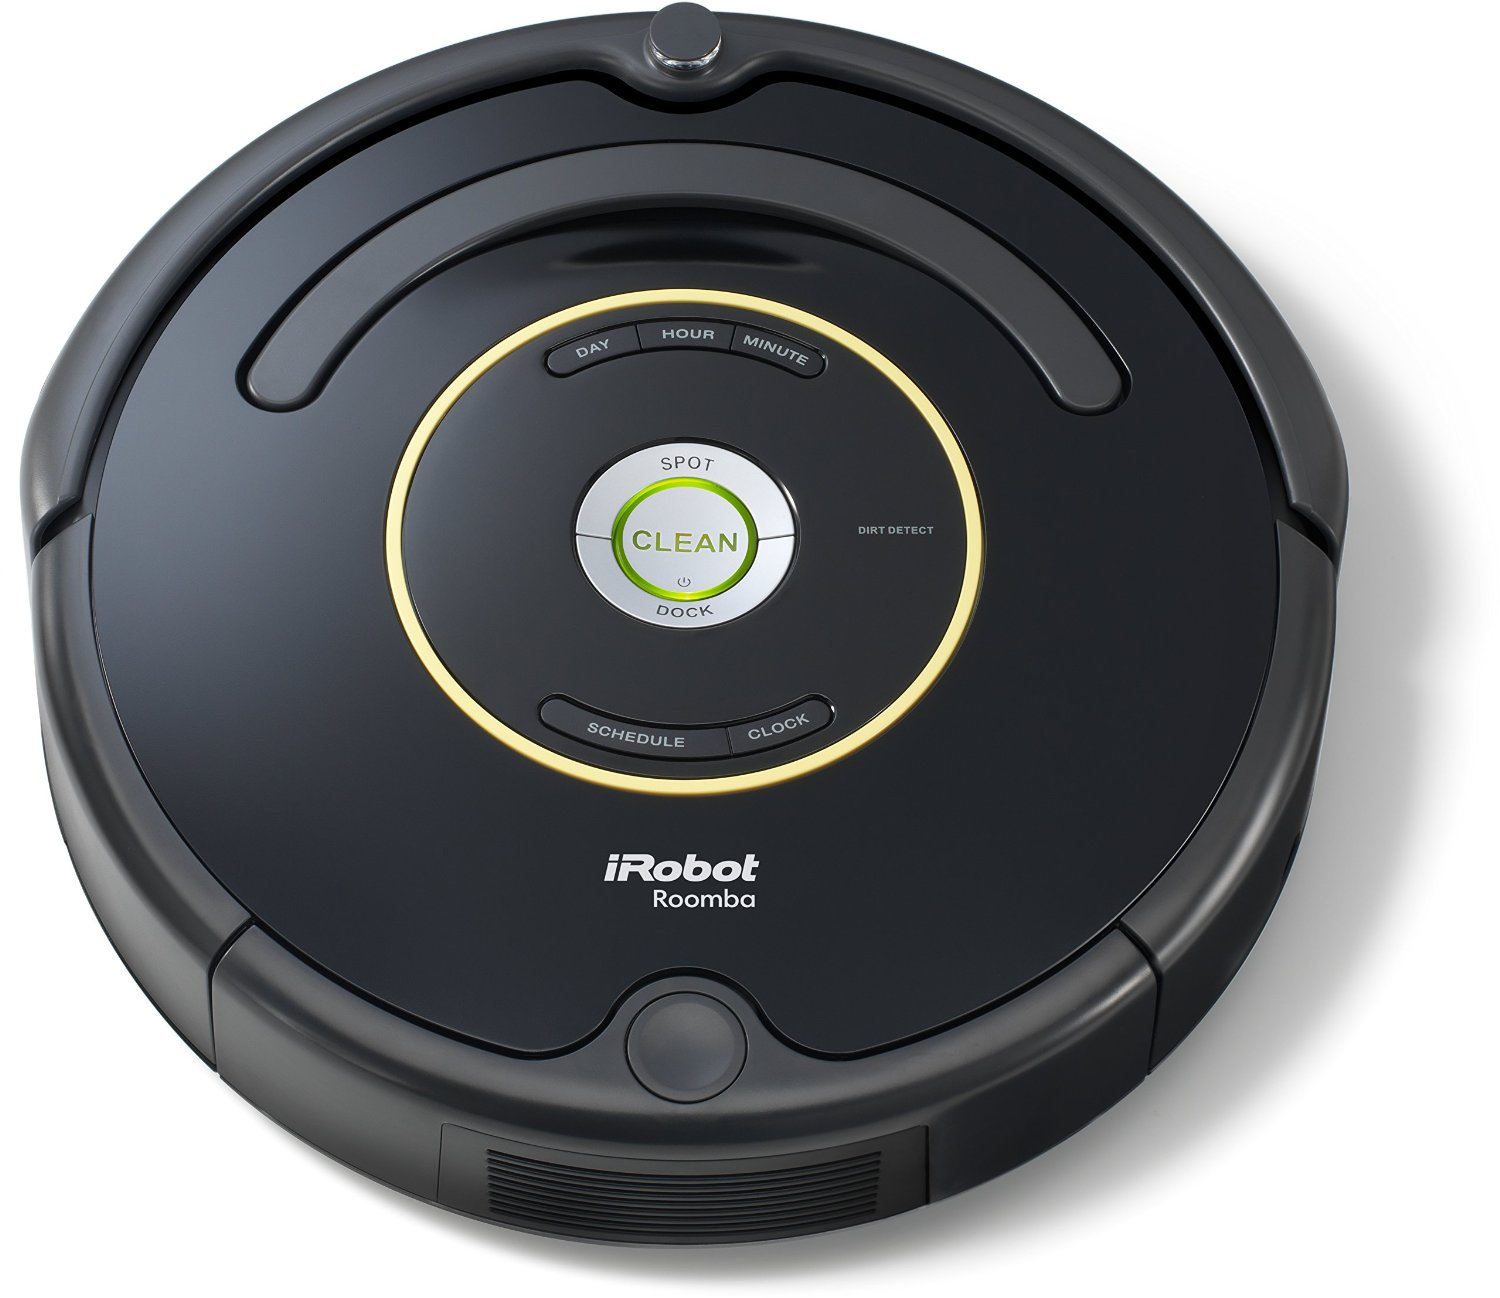 Top 5 Robot Vacuum Cleaners Available in India